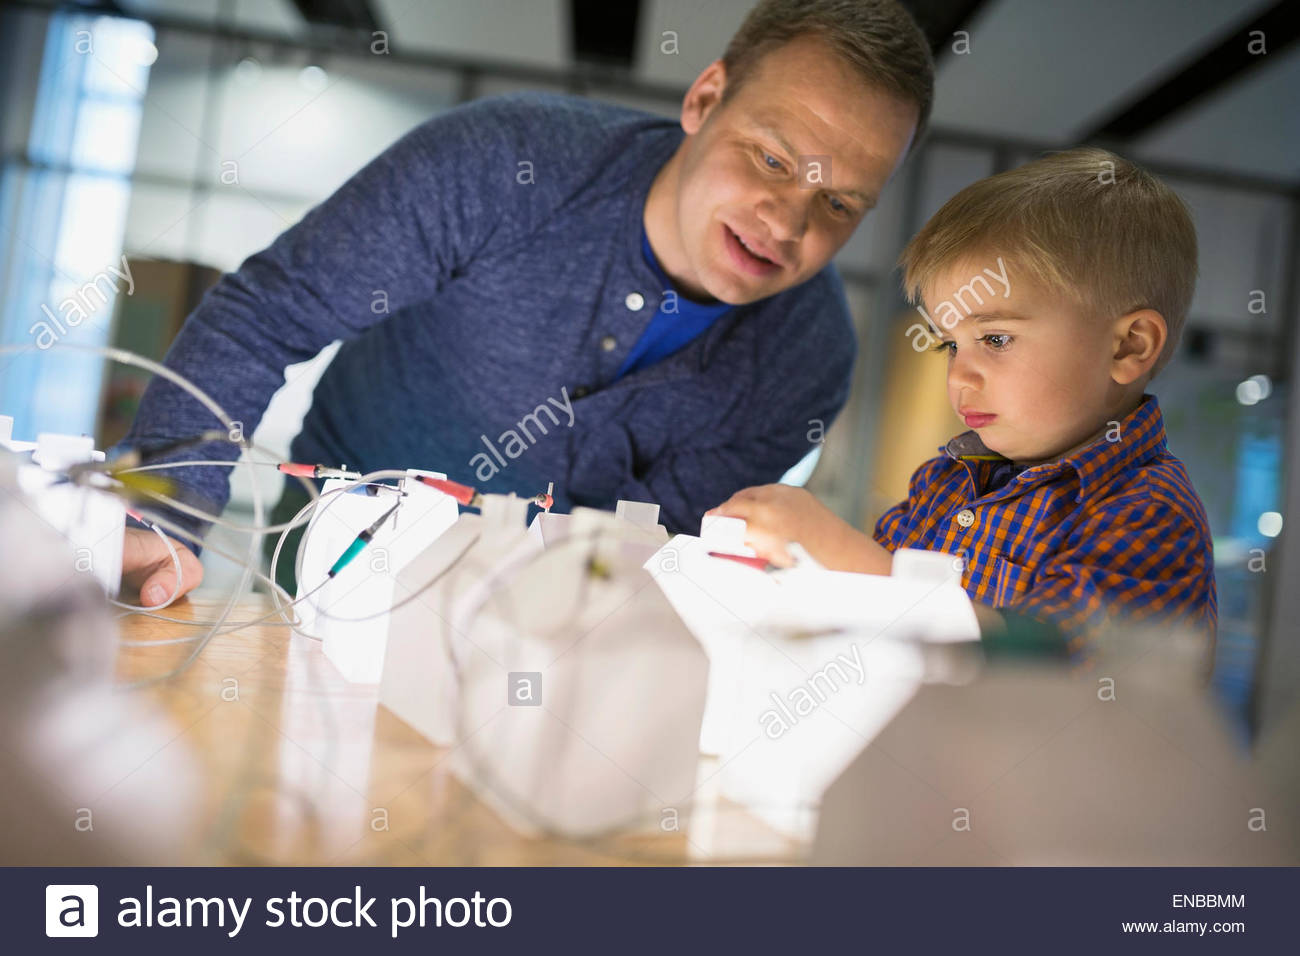 Father and son playing electricity grid science center - Stock Image